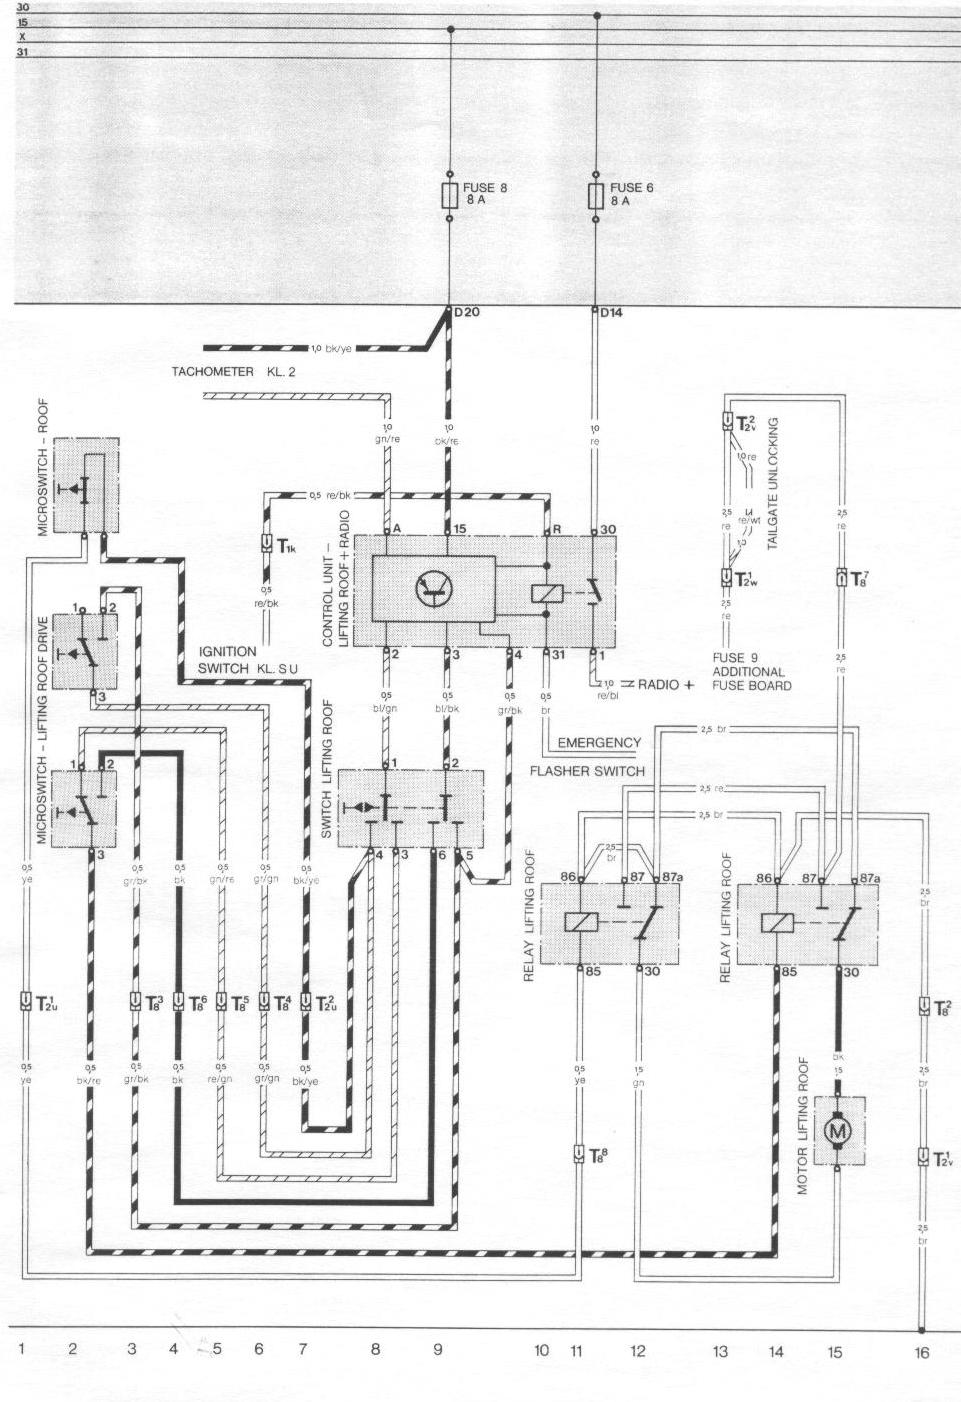 944_84_sunroof pelican parts porsche 924 944 electrical diagrams 1983 porsche 944 fuse box diagram at bayanpartner.co